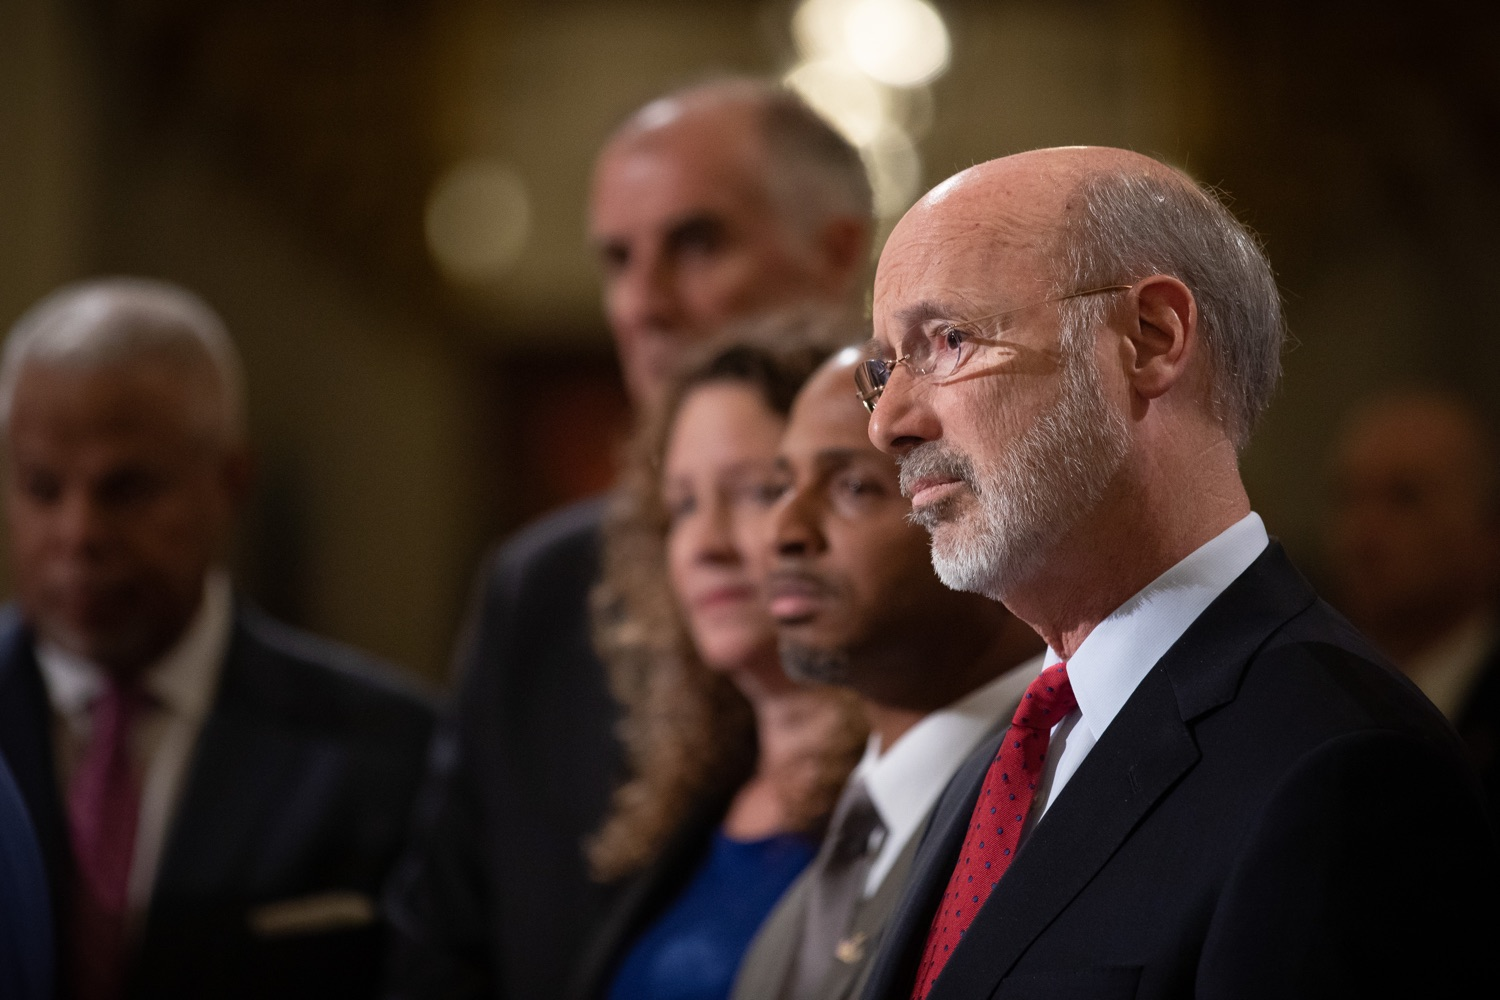 """<a href=""""http://filesource.abacast.com/commonwealthofpa/photo/17601_gov_right_on_crime_dz_016.jpg"""" target=""""_blank"""">⇣Download Photo<br></a>Governor Tom Wolf listening to speakers at the event.Governor Tom Wolf was joined by Deputy Secretary of Corrections Christian Stephens and national criminal justice reform advocates today in the Capitol Rotunda to push for commonsense probation reforms that address probation sentences and probation lengths.  Harrisburg, PA  November 18, 2019"""